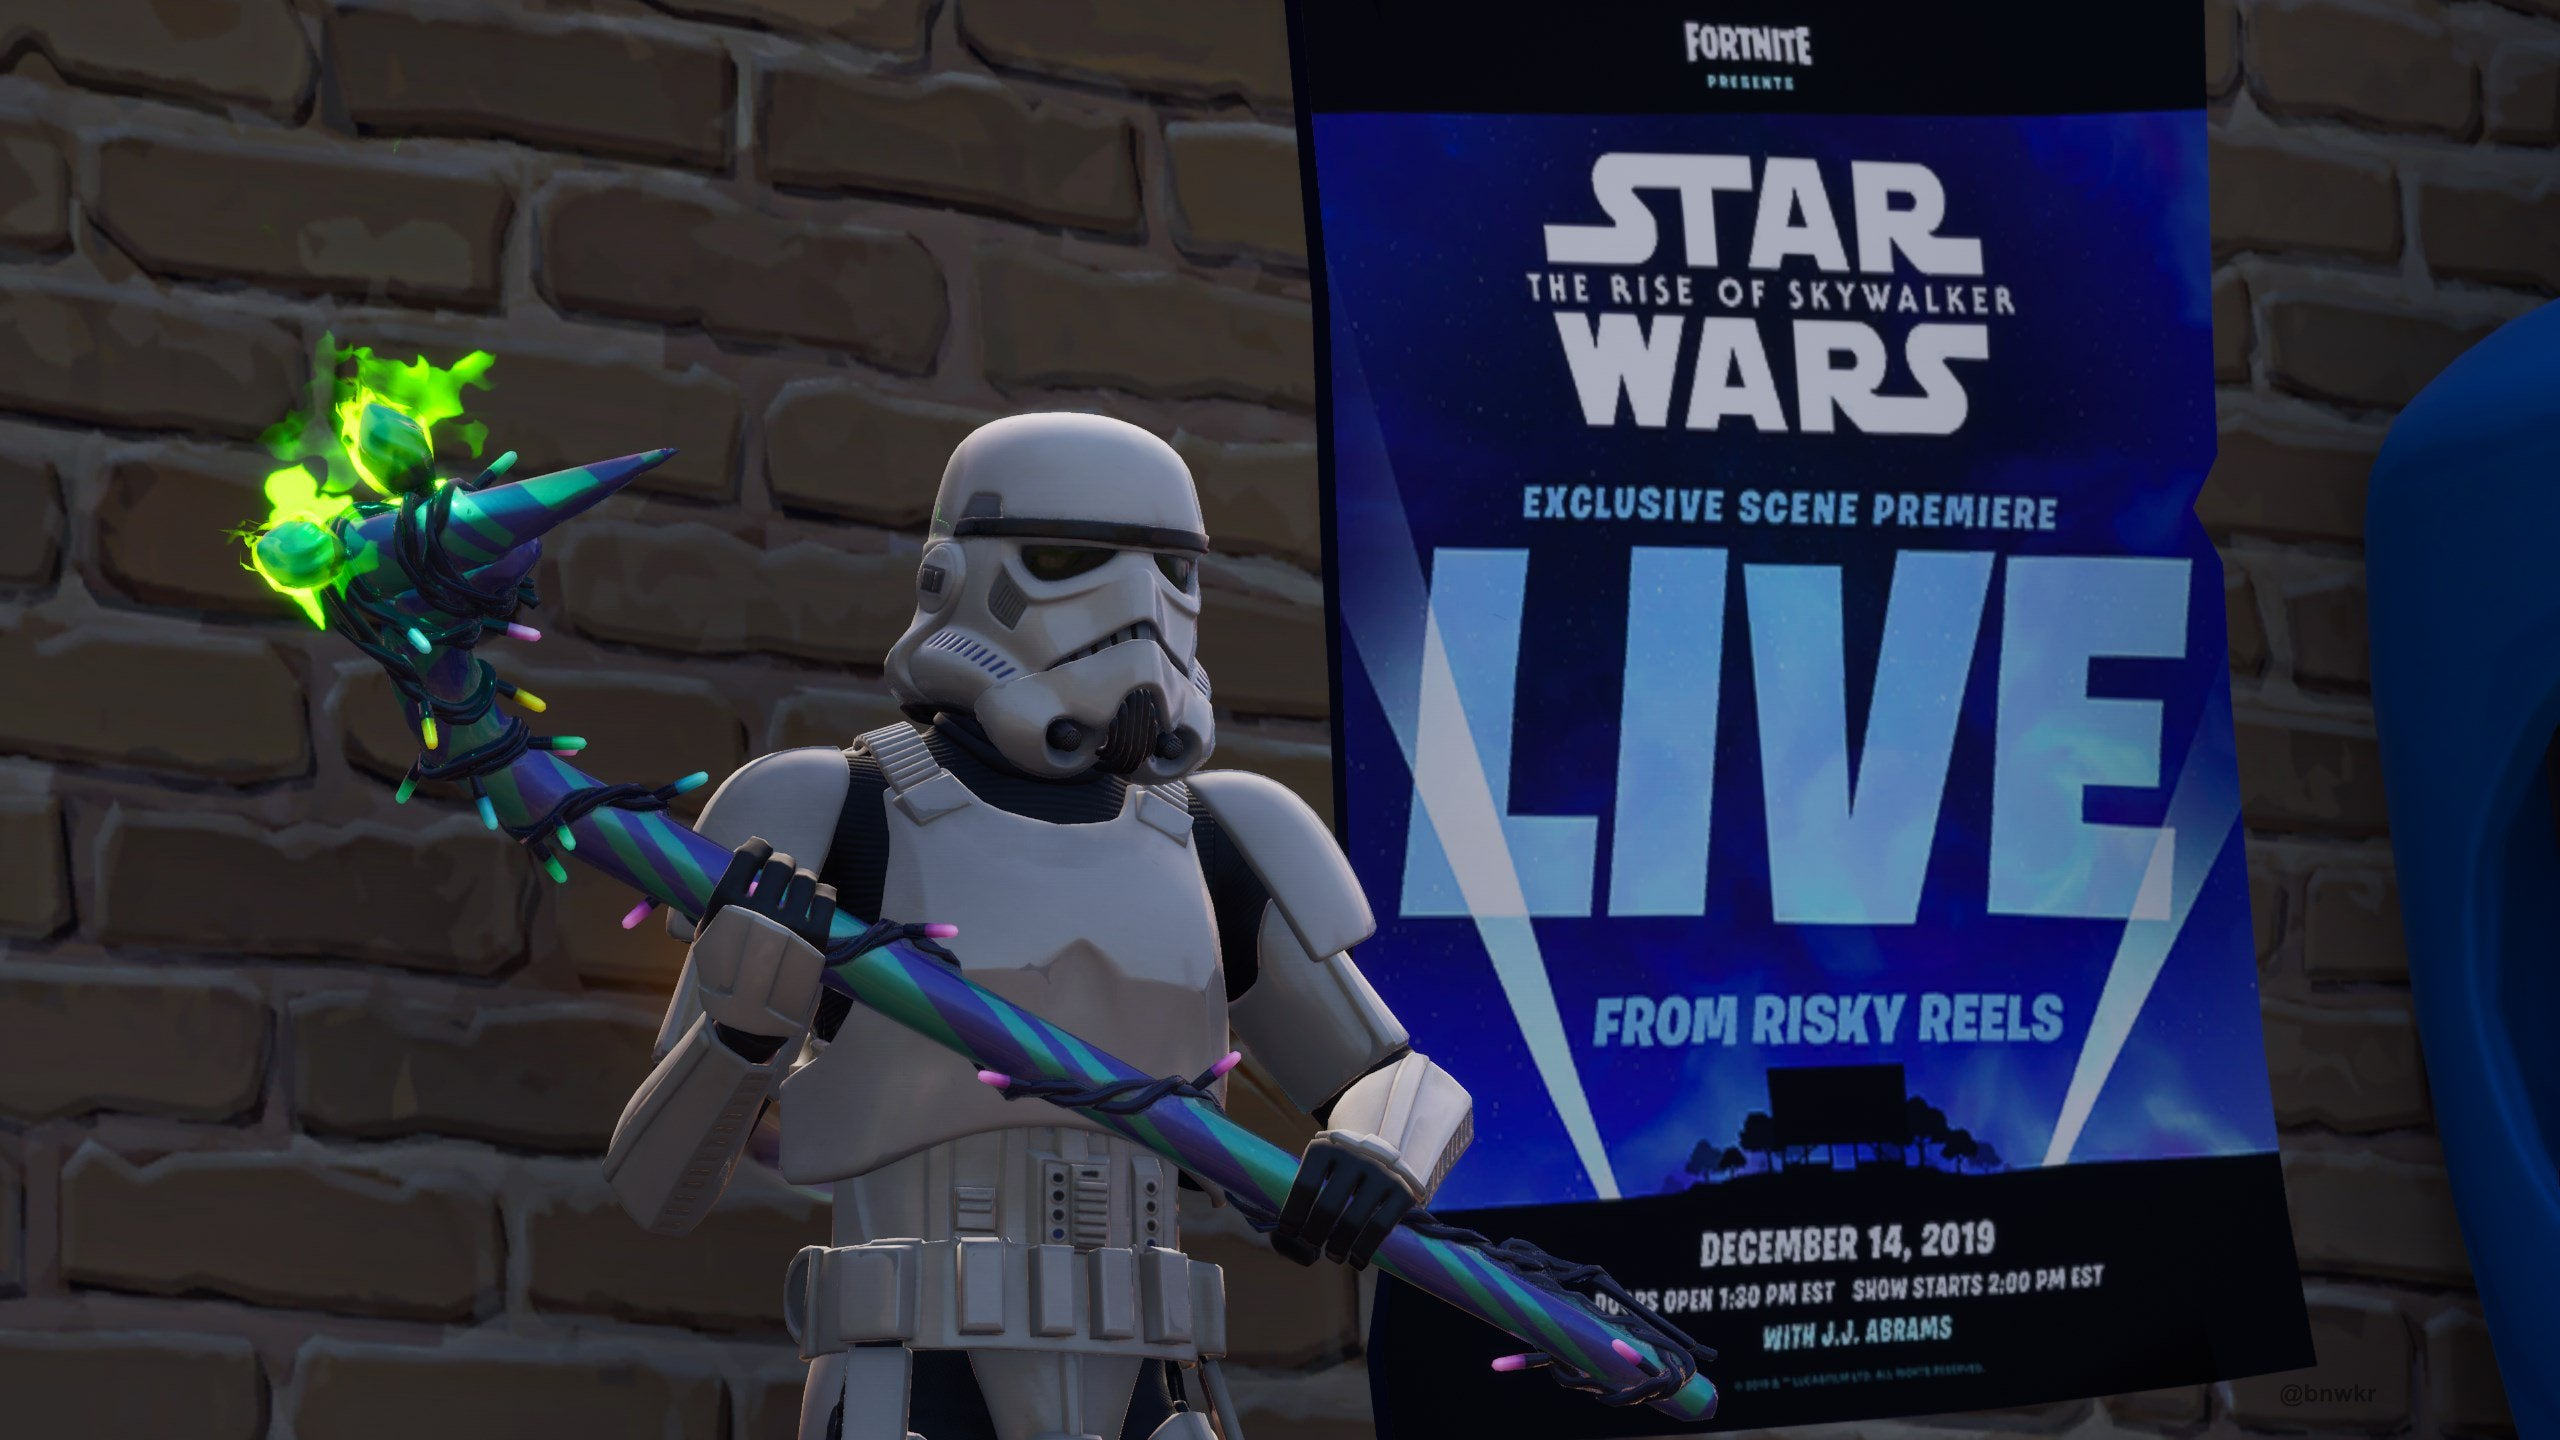 A New Scene From Star Wars: The Rise Of Skywalker Is Premiering Next Week At Fortnite's Drive-In Theatre